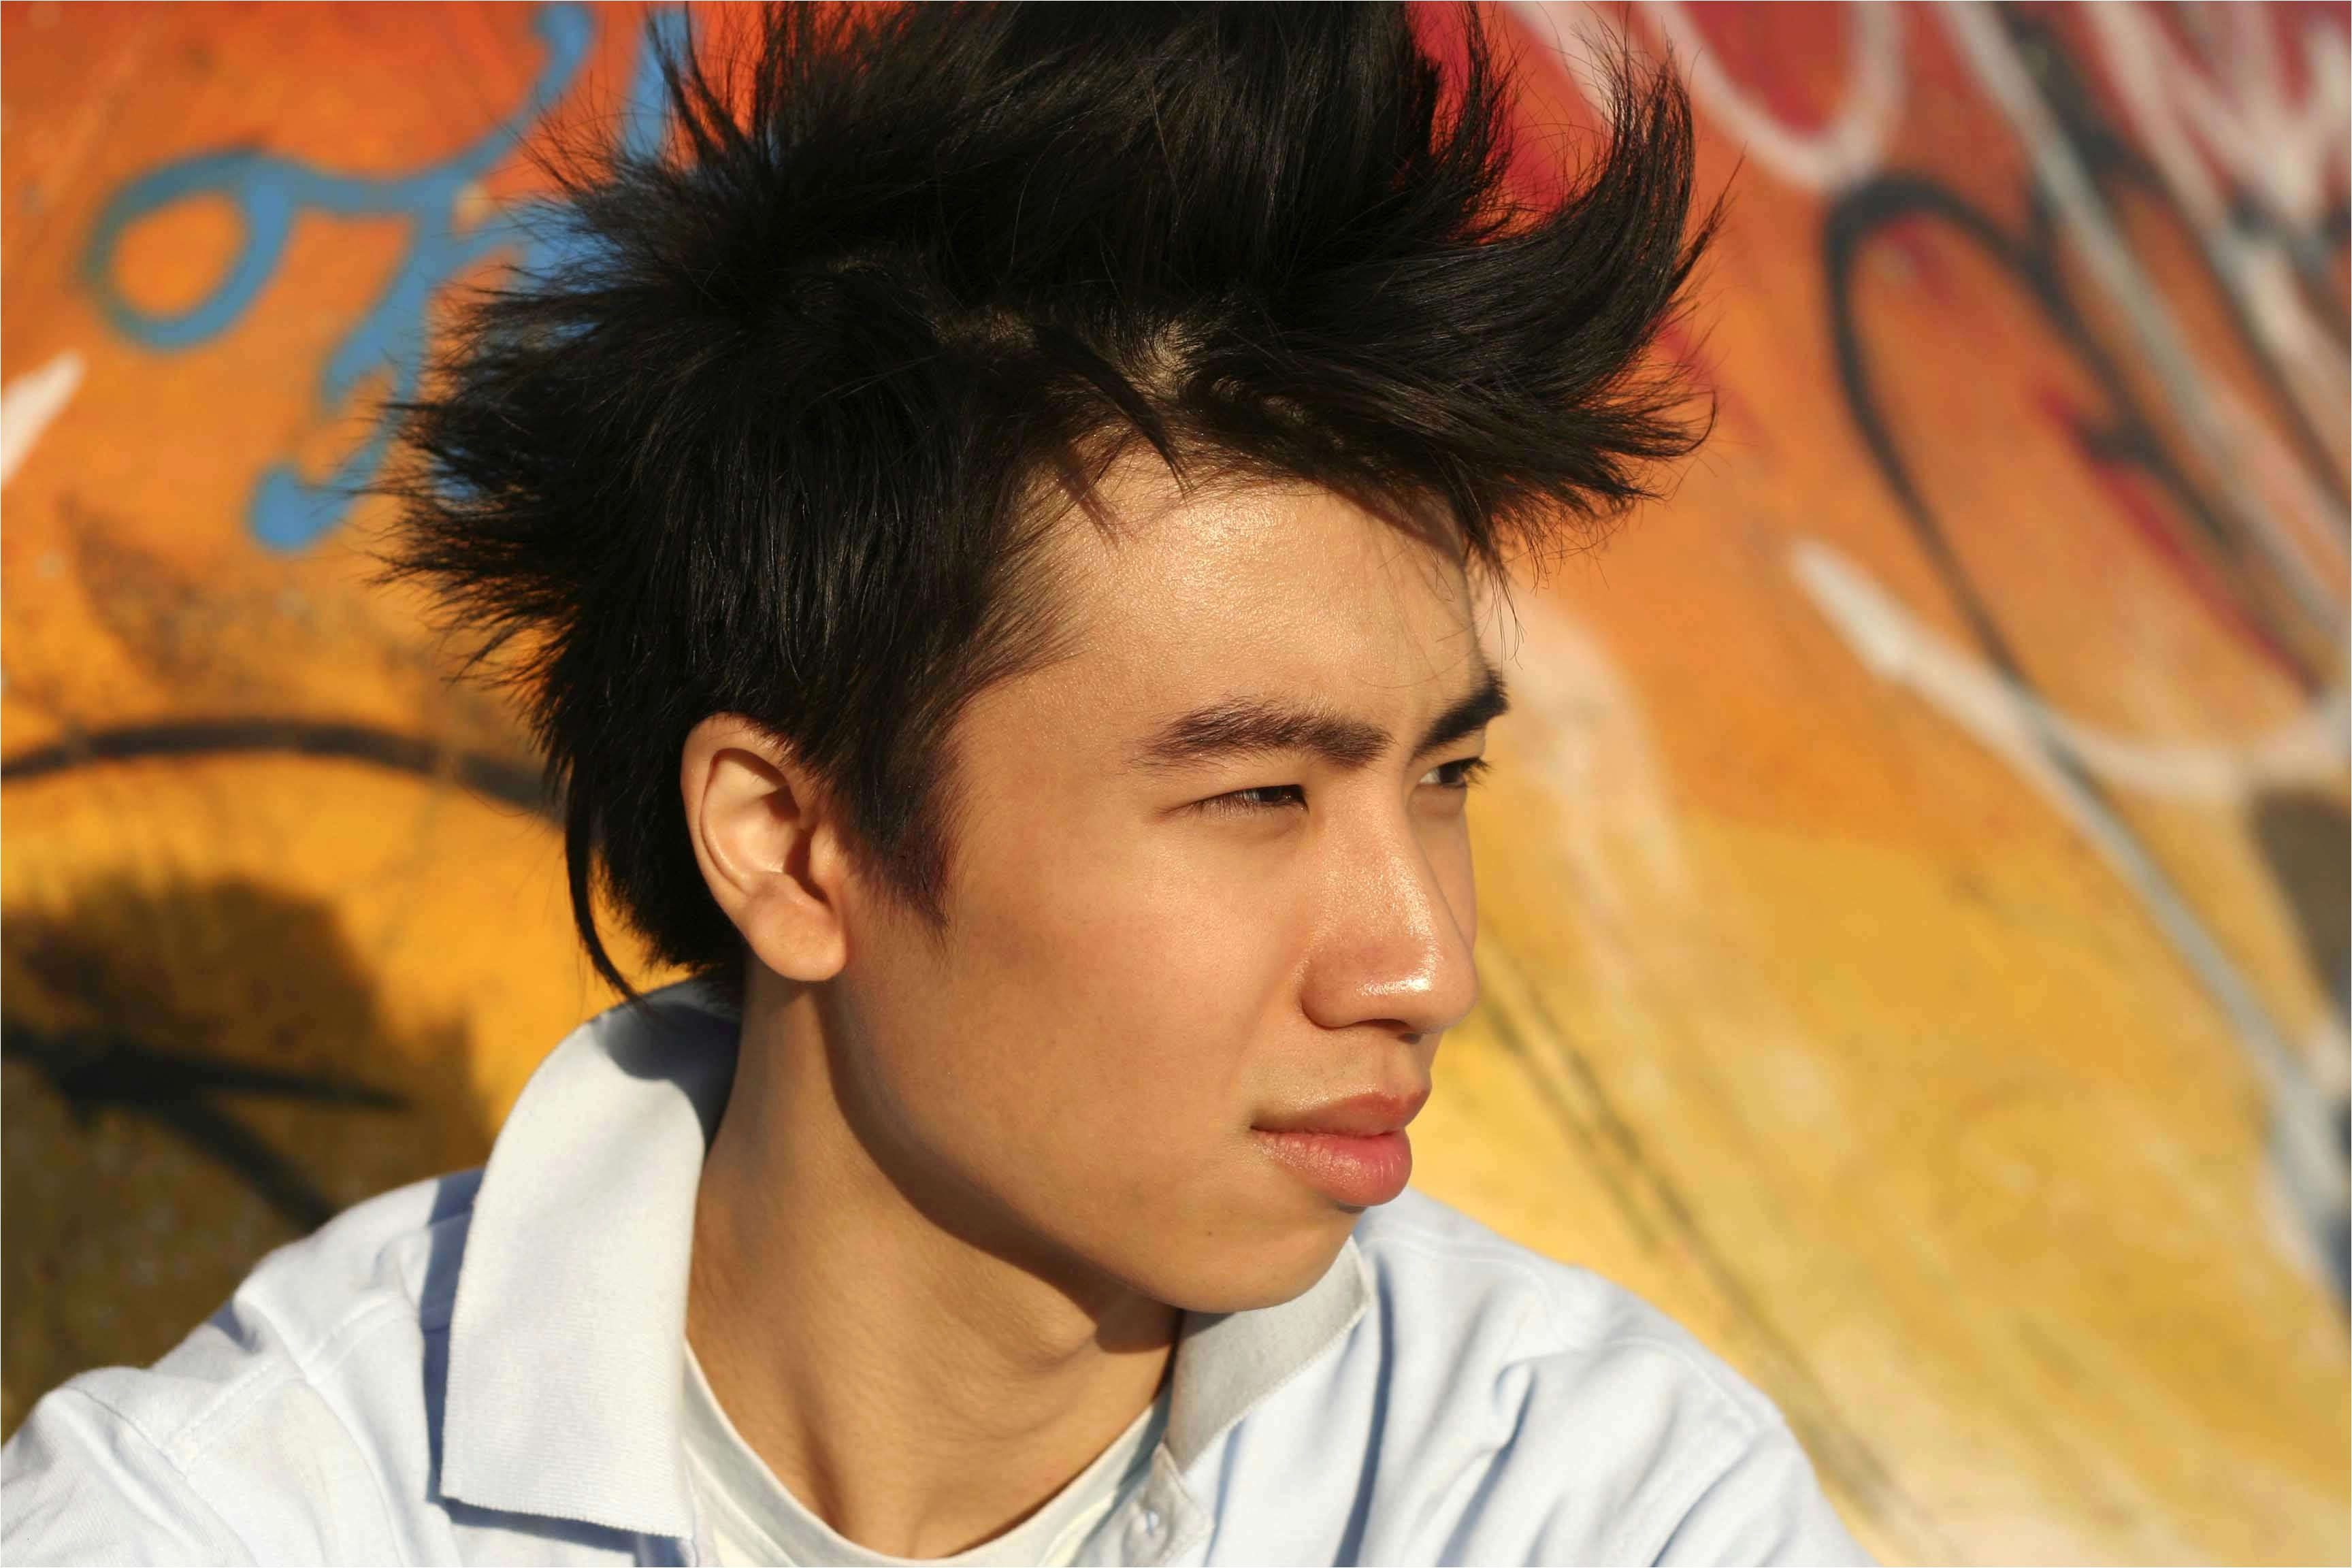 Hair Style Guy Guy Hairstyle Fresh Enchanting Hairstyles for Men Luxury Haircuts 0d